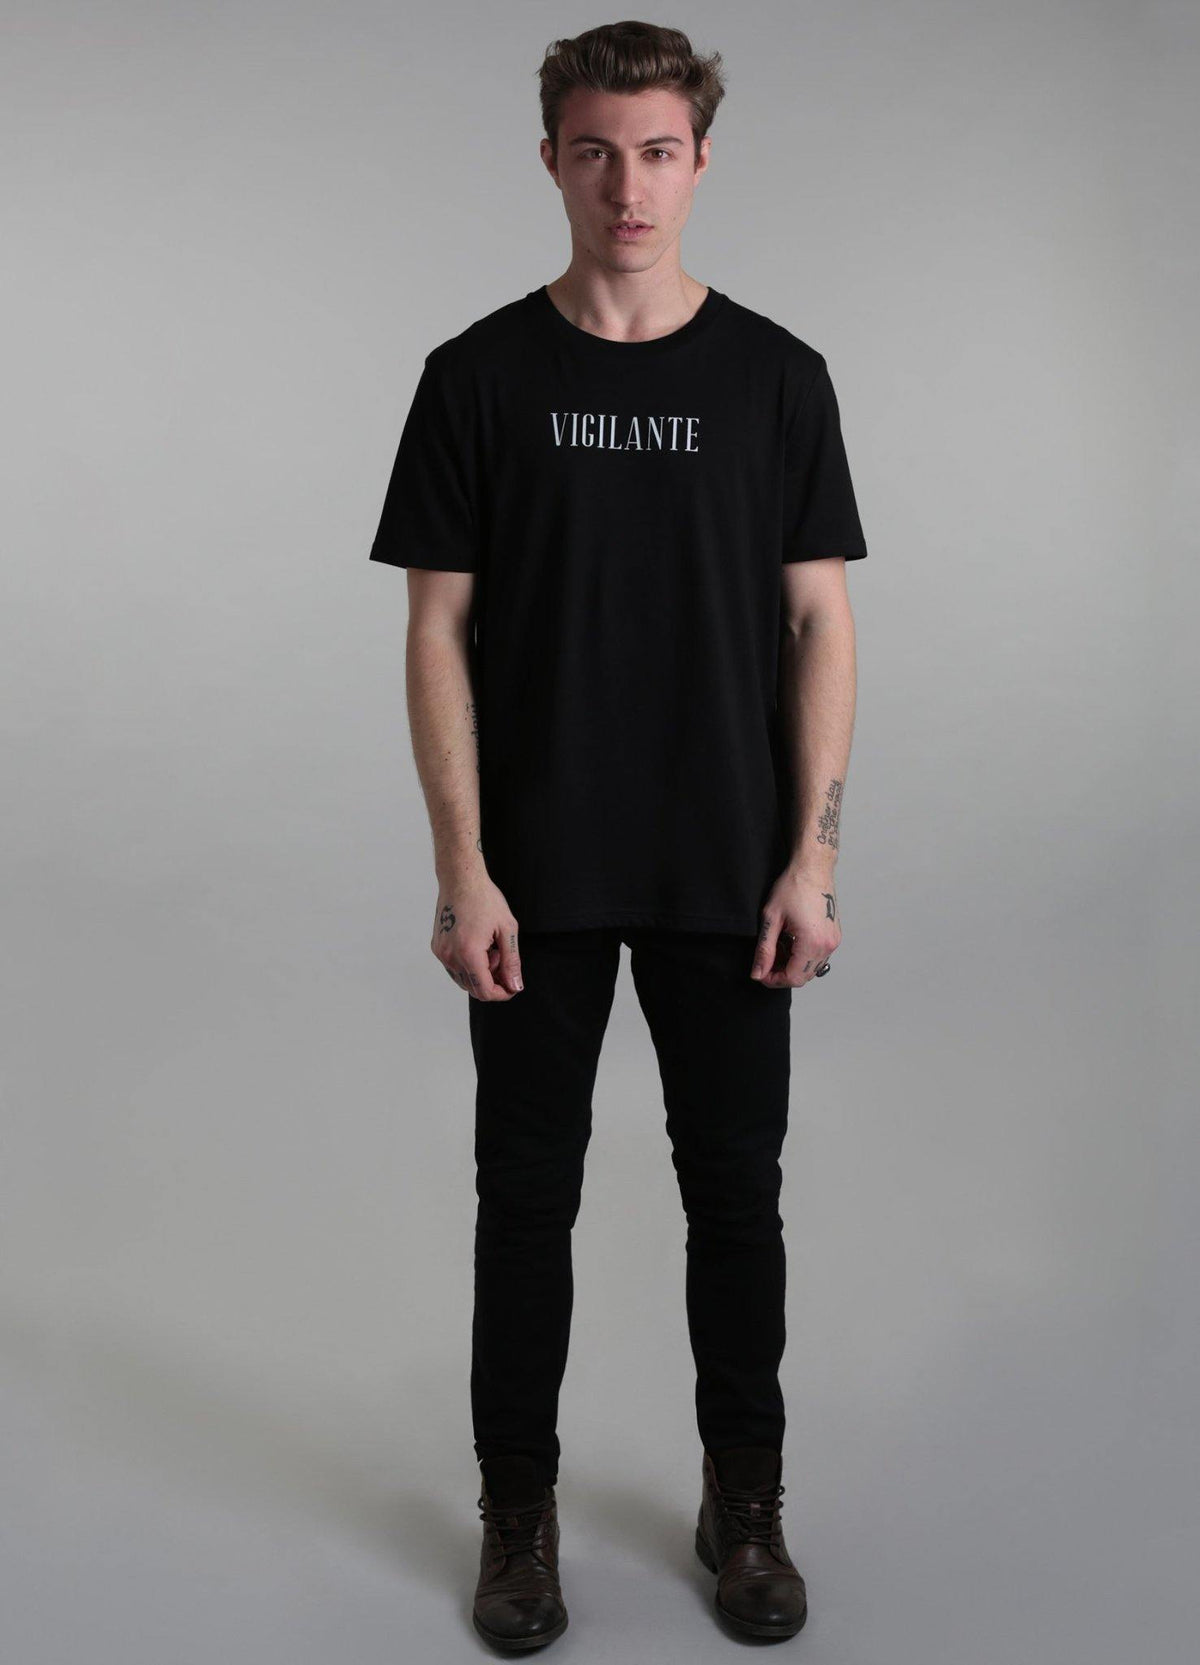 Vigilante T-Shirt - Alistair Grey